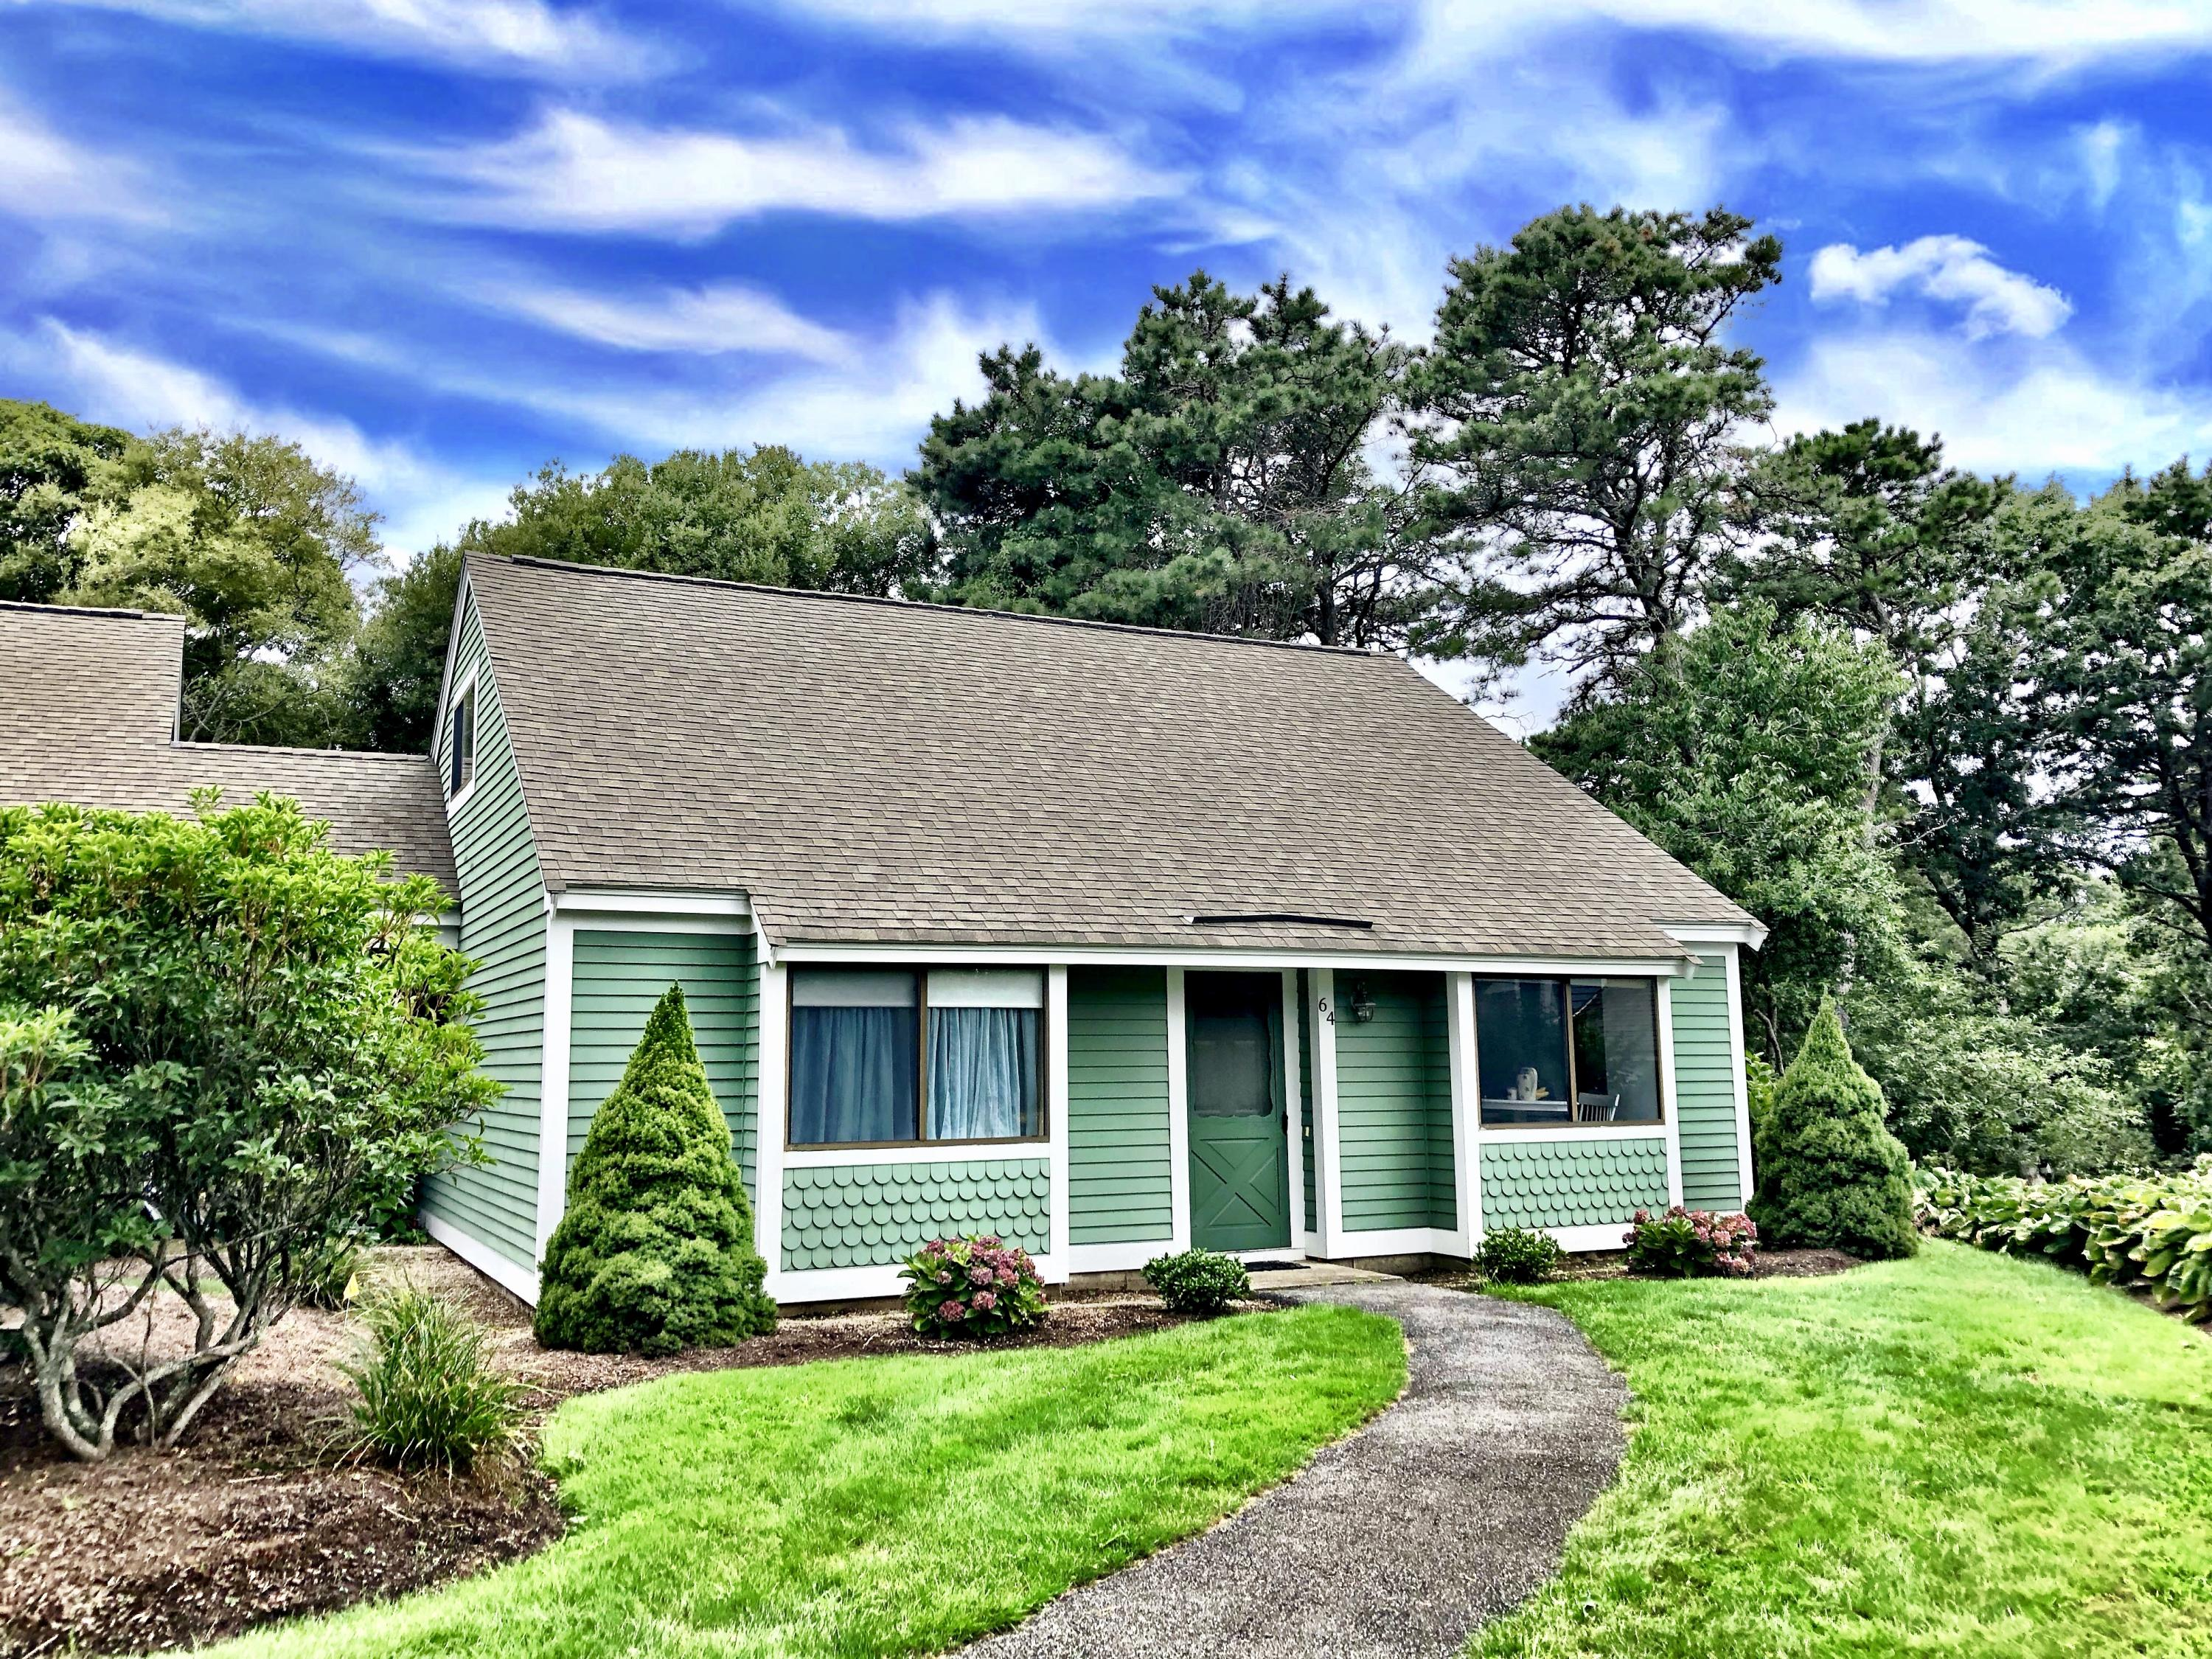 64 Middlecott Lane, Brewster MA, 02631